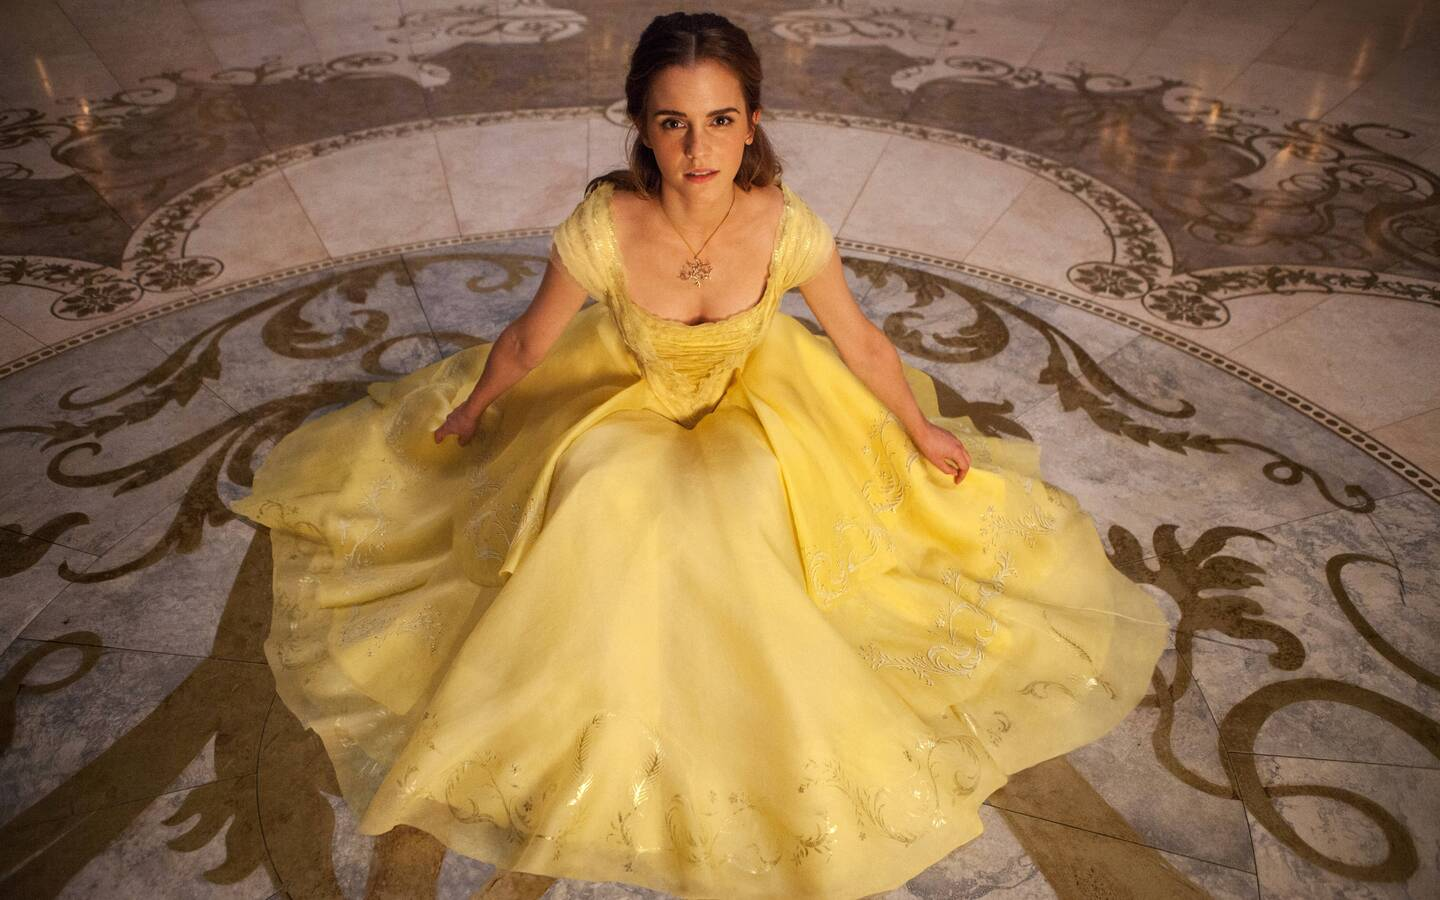 emma-watson-in-beauty-and-the-beast-5k-new.jpg